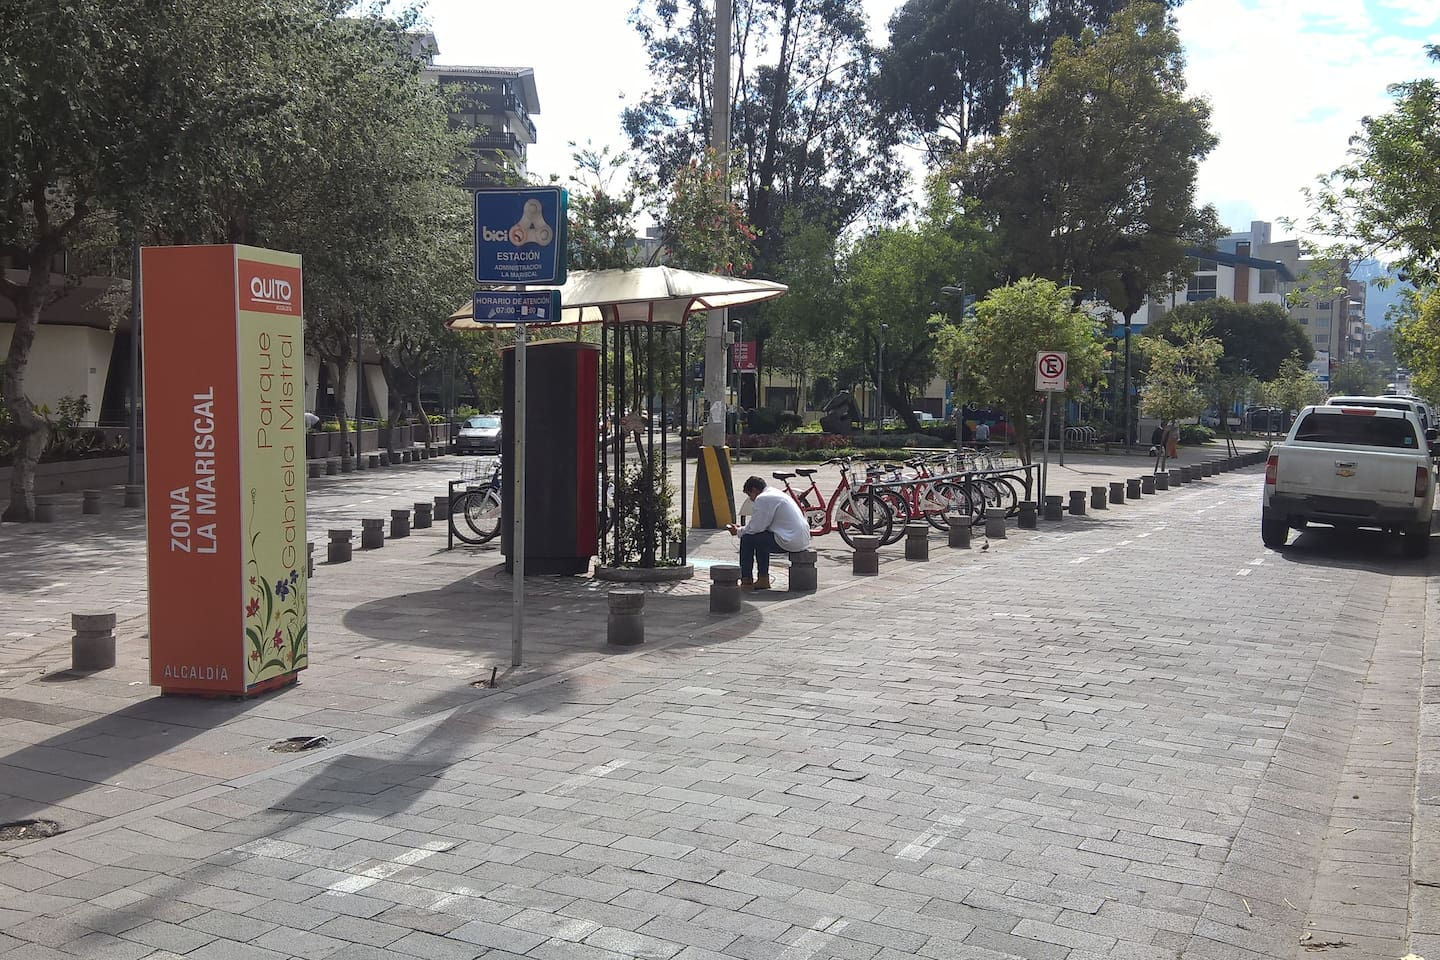 Across the street,  you can walk in this small park or rent a bicycle. Best way to get around town, fast and easy.